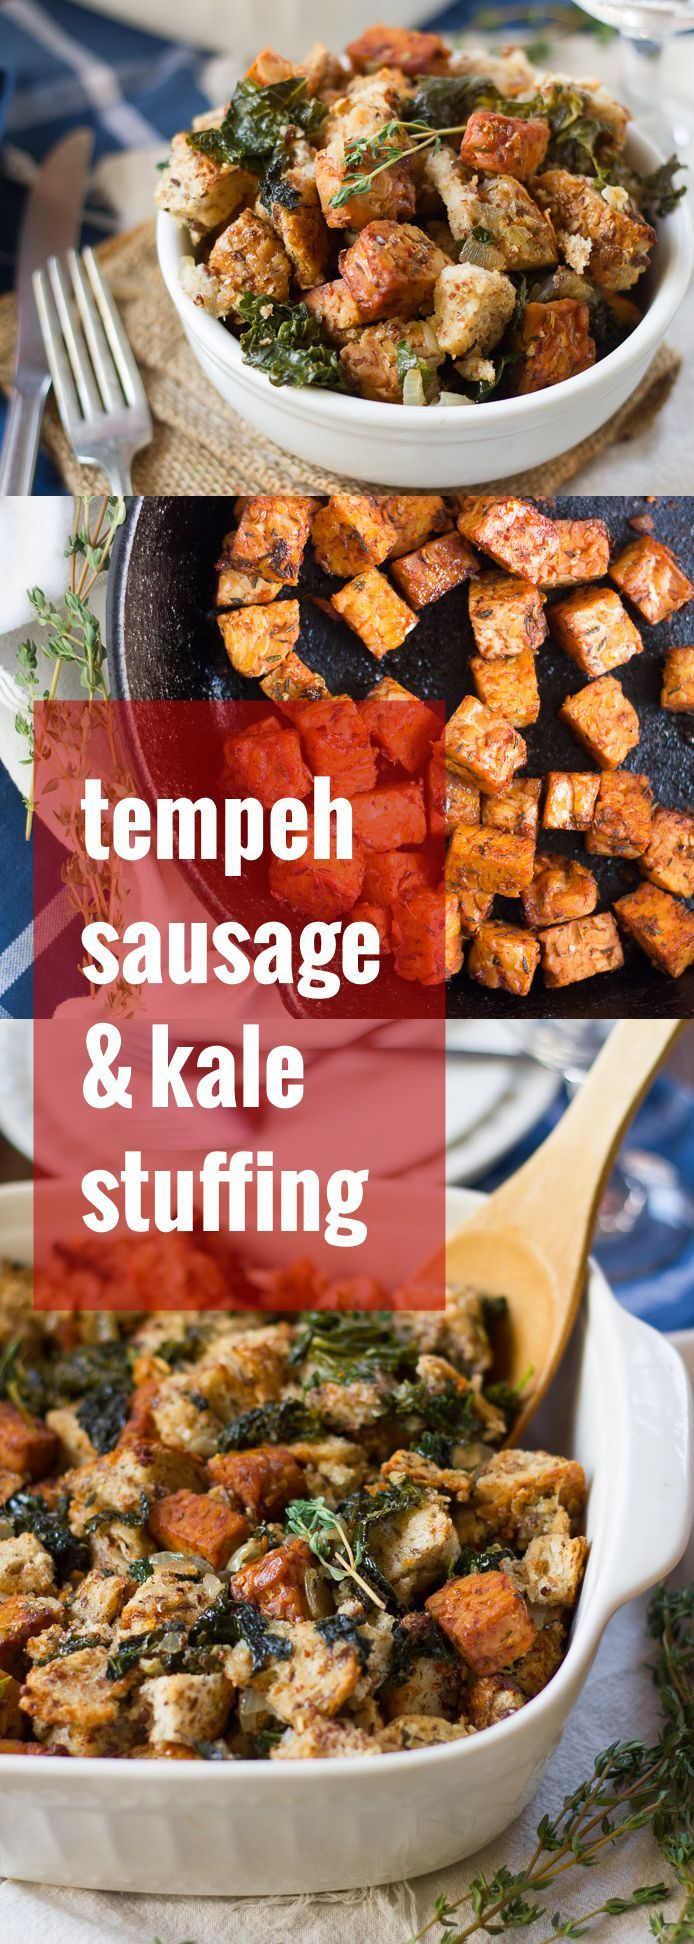 Us potato cuts jpg thanksgiving dinner at restaurant 9501 - Spicy Tempeh Sausage And Garlicky Kale Are Baked Up With Crusty Seasoned Bread Cubes To Make